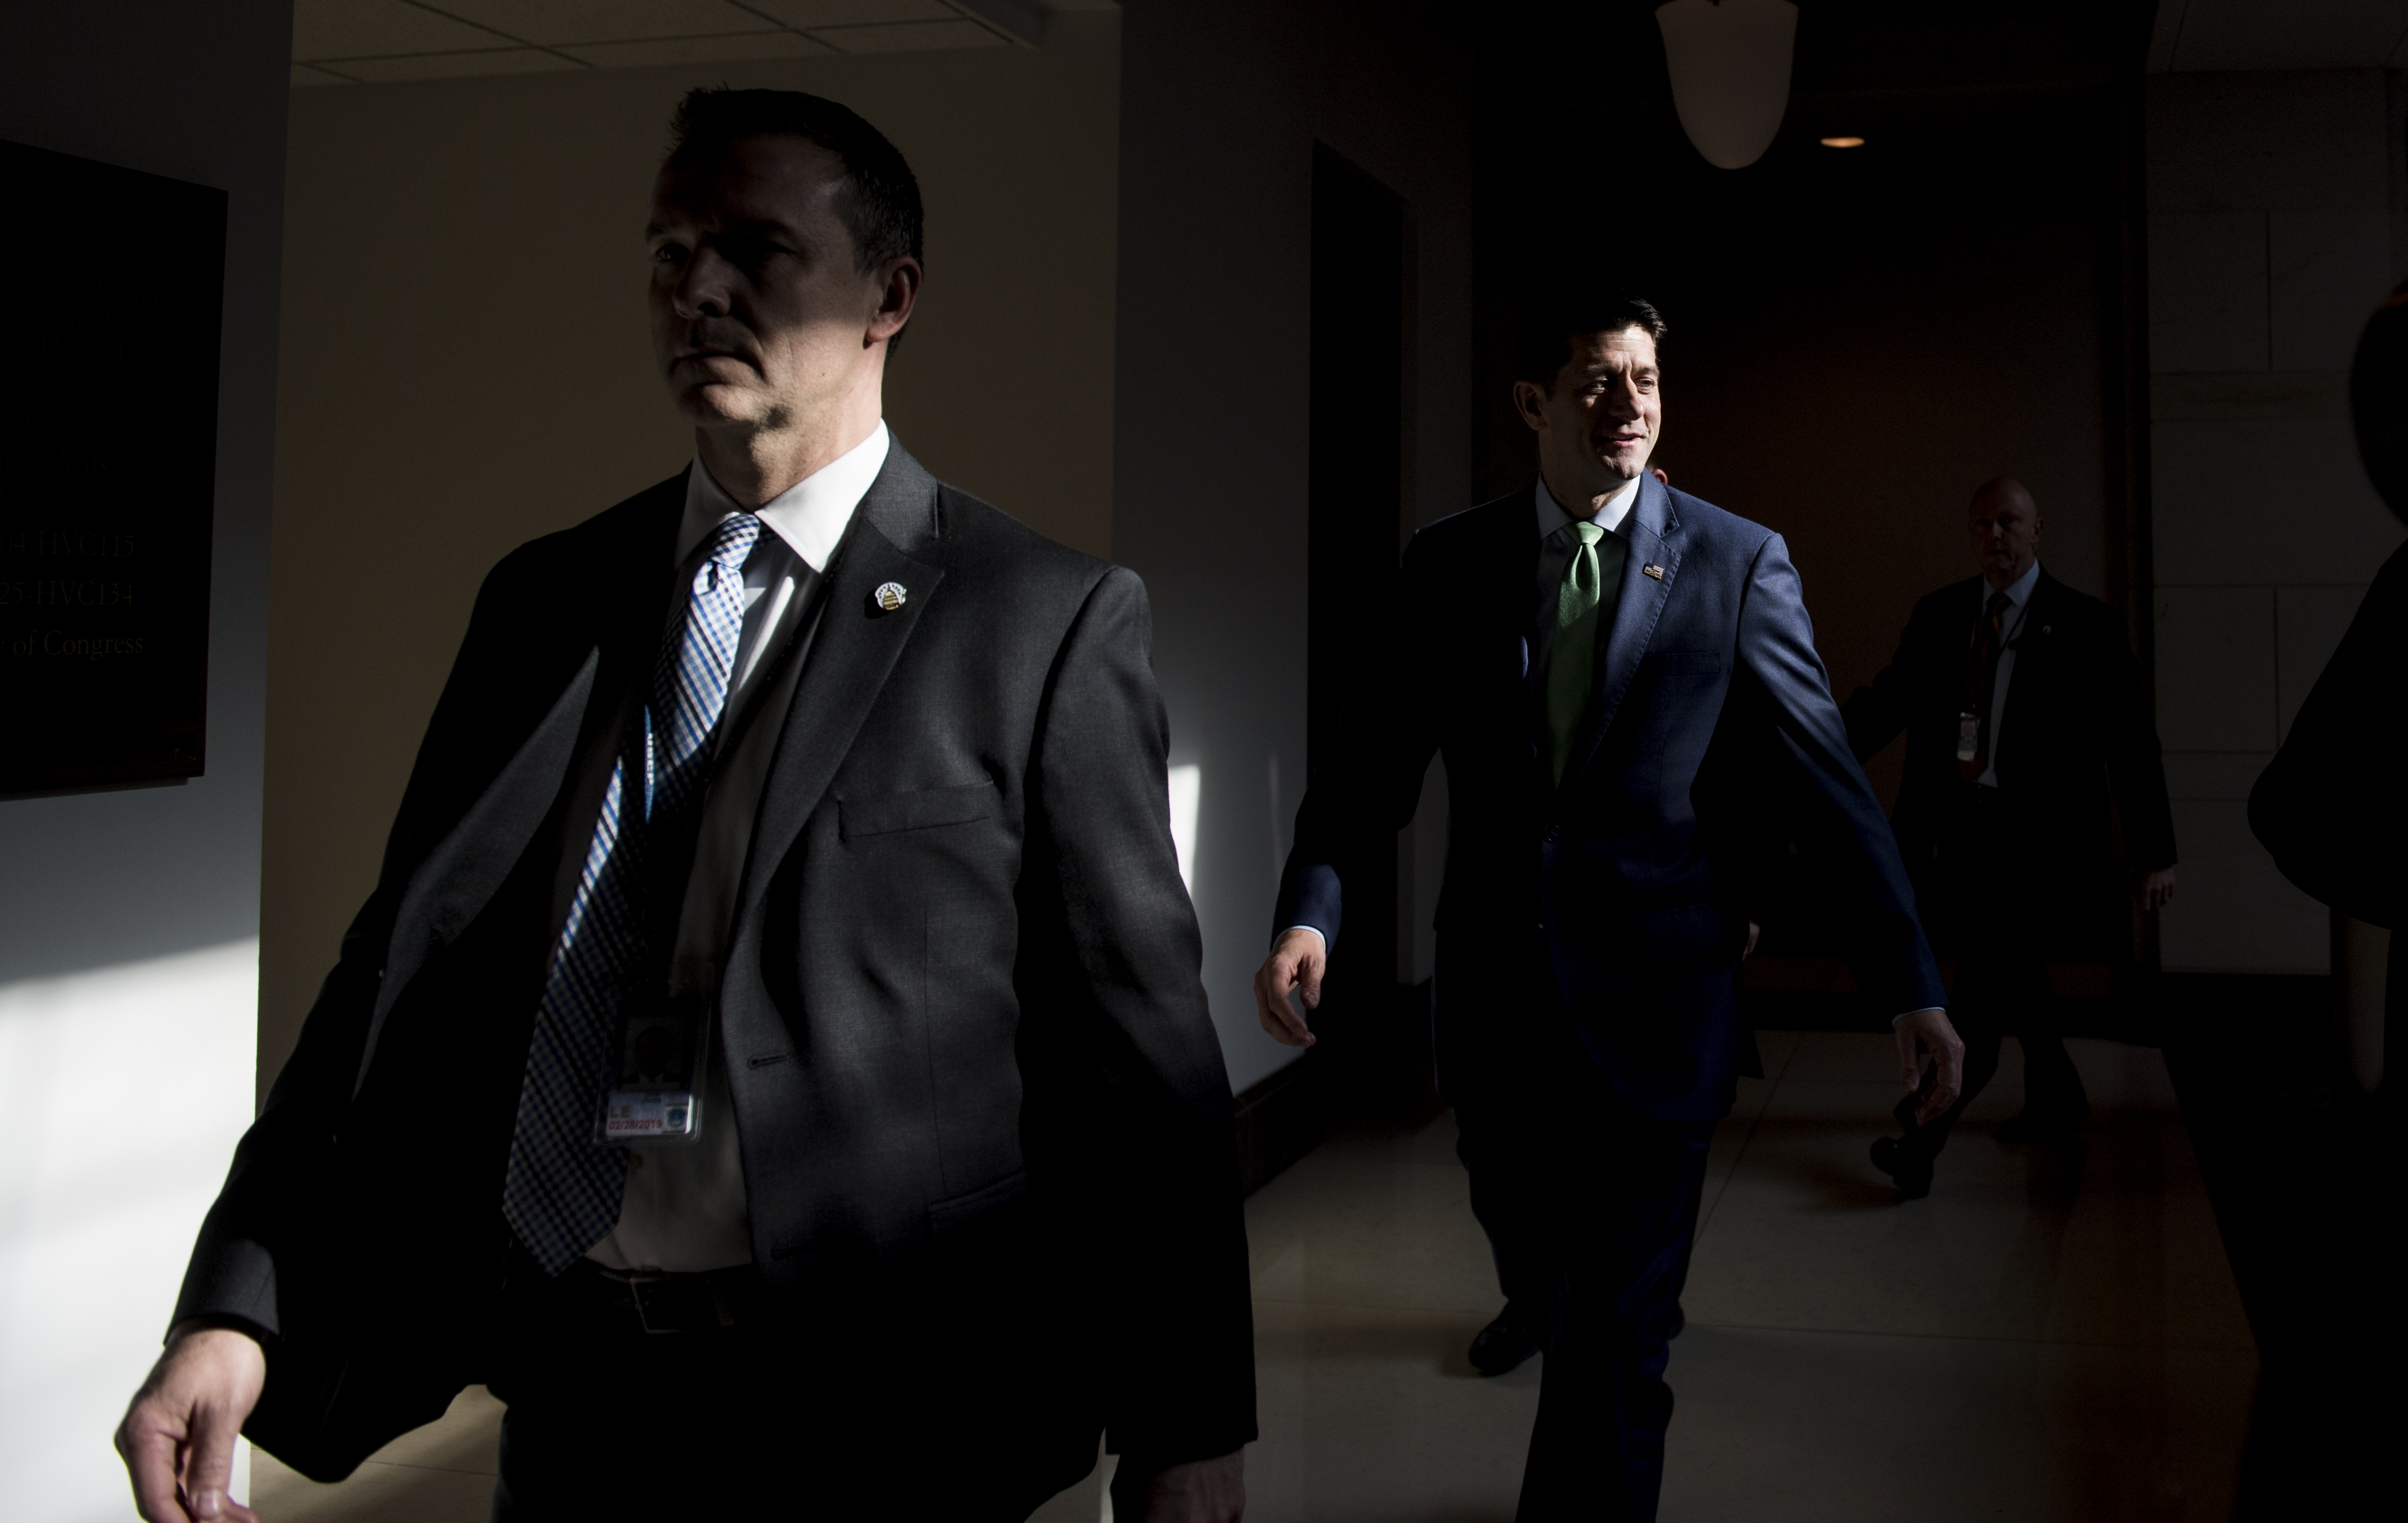 UNITED STATES - DECEMBER 12: Speaker of the House Paul Ryan, R-Wisc., leaves the House Intelligence Committee on Wednesday, Dec. 12, 2018, after the briefing by CIA Director Gina Haspel on the killing of Jamal Khashoggi. (Photo By Bill Clark/CQ Roll Call)